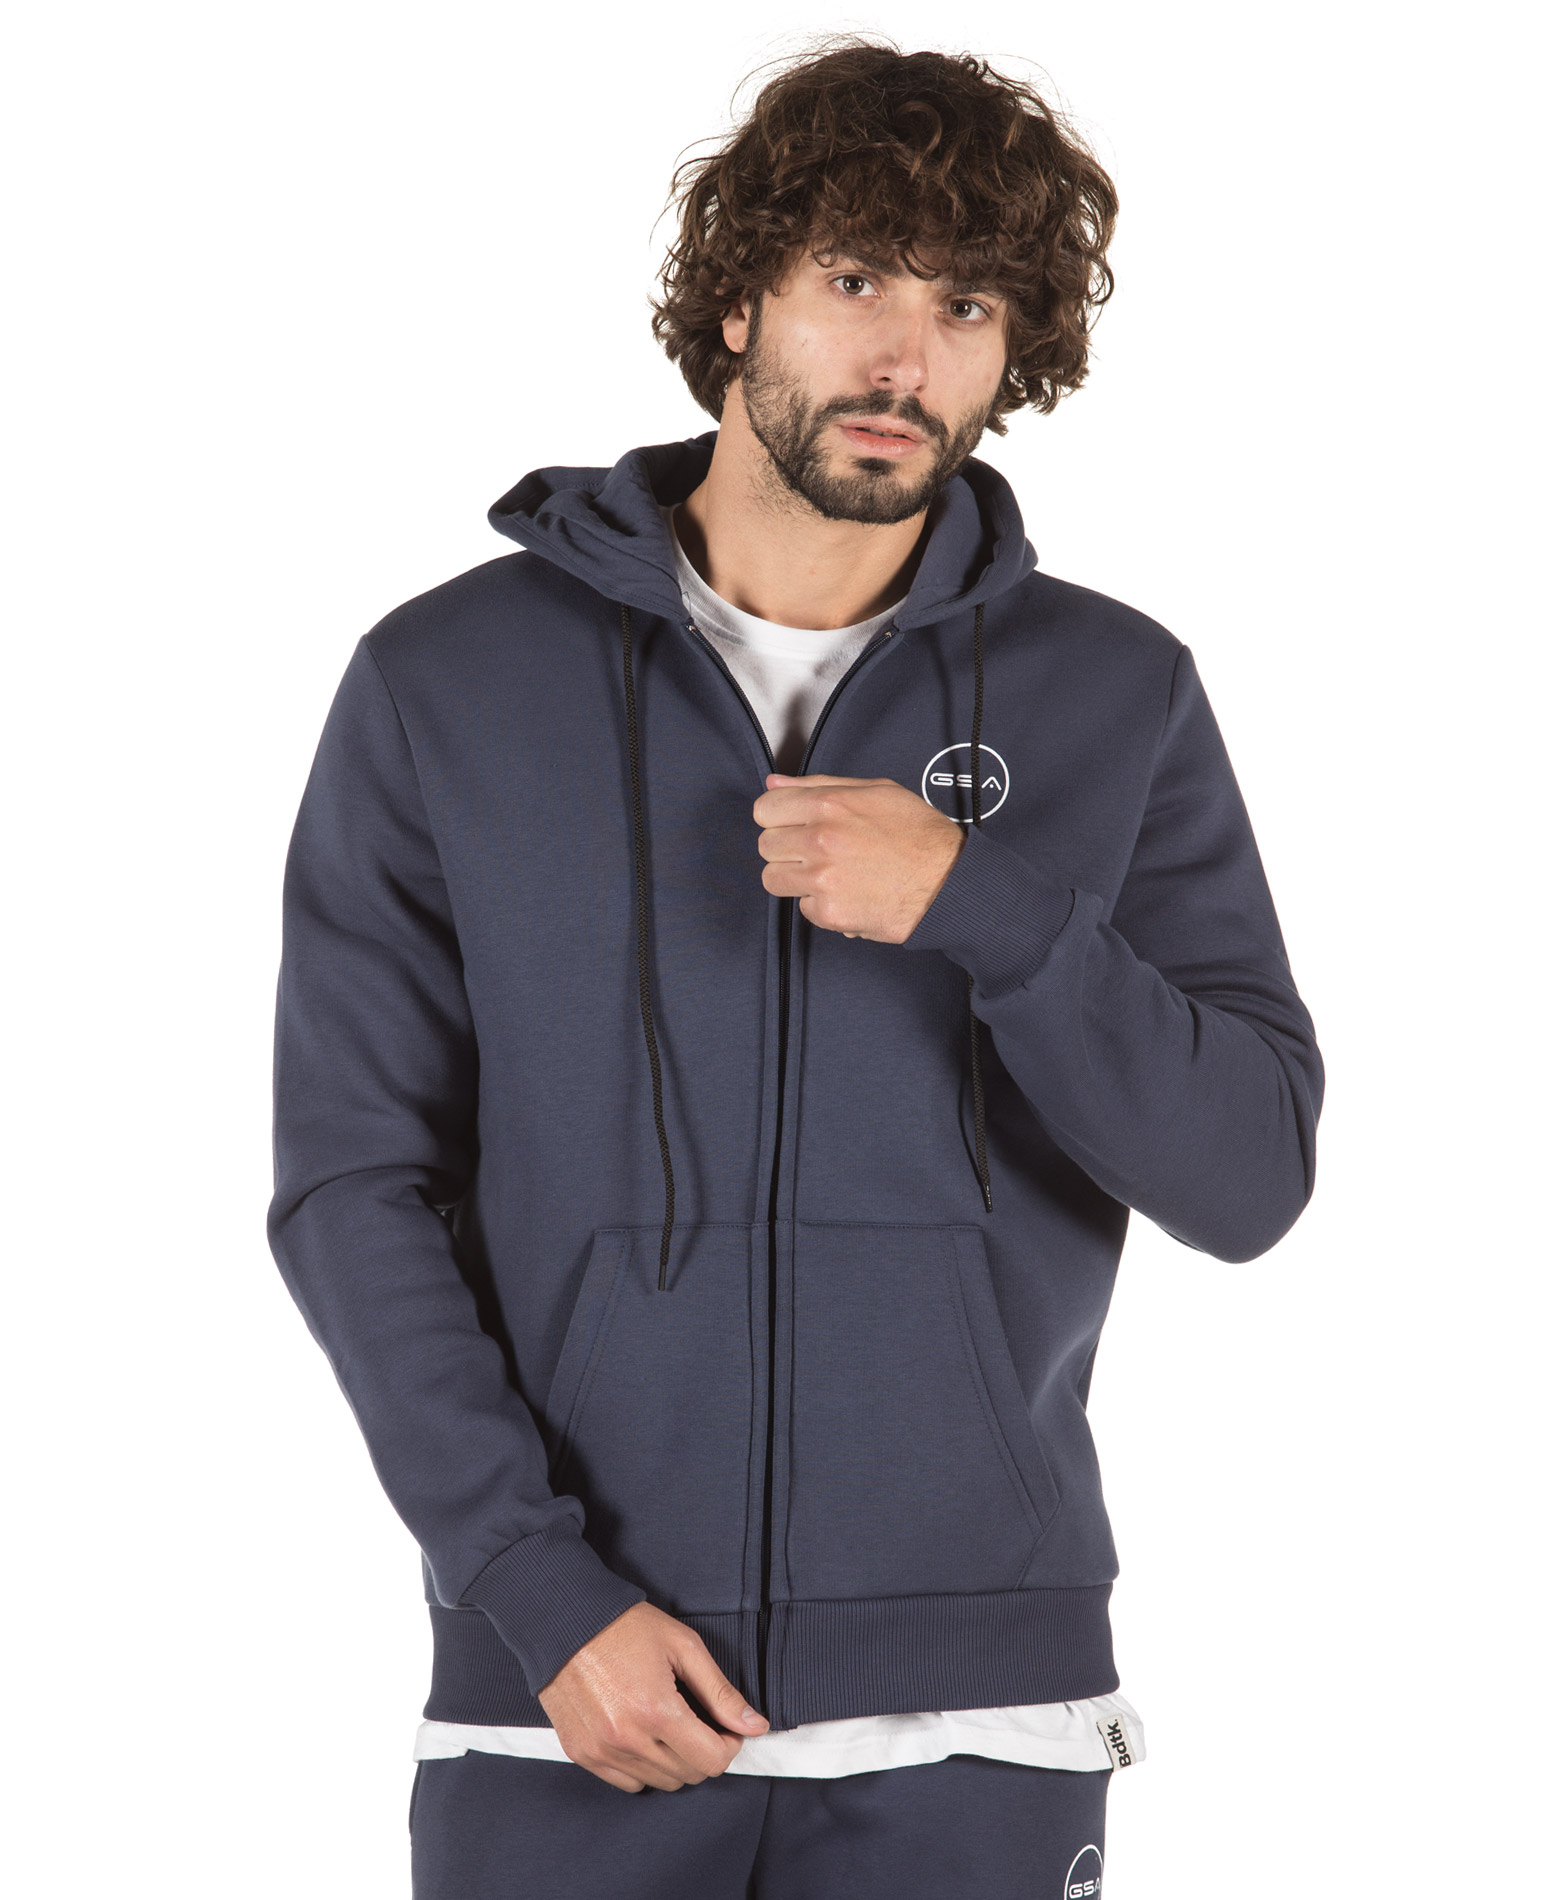 GSA SUPERCOTTON ZIPPER HOODIE 17-17026-03 BLUE MARINE Μπλε